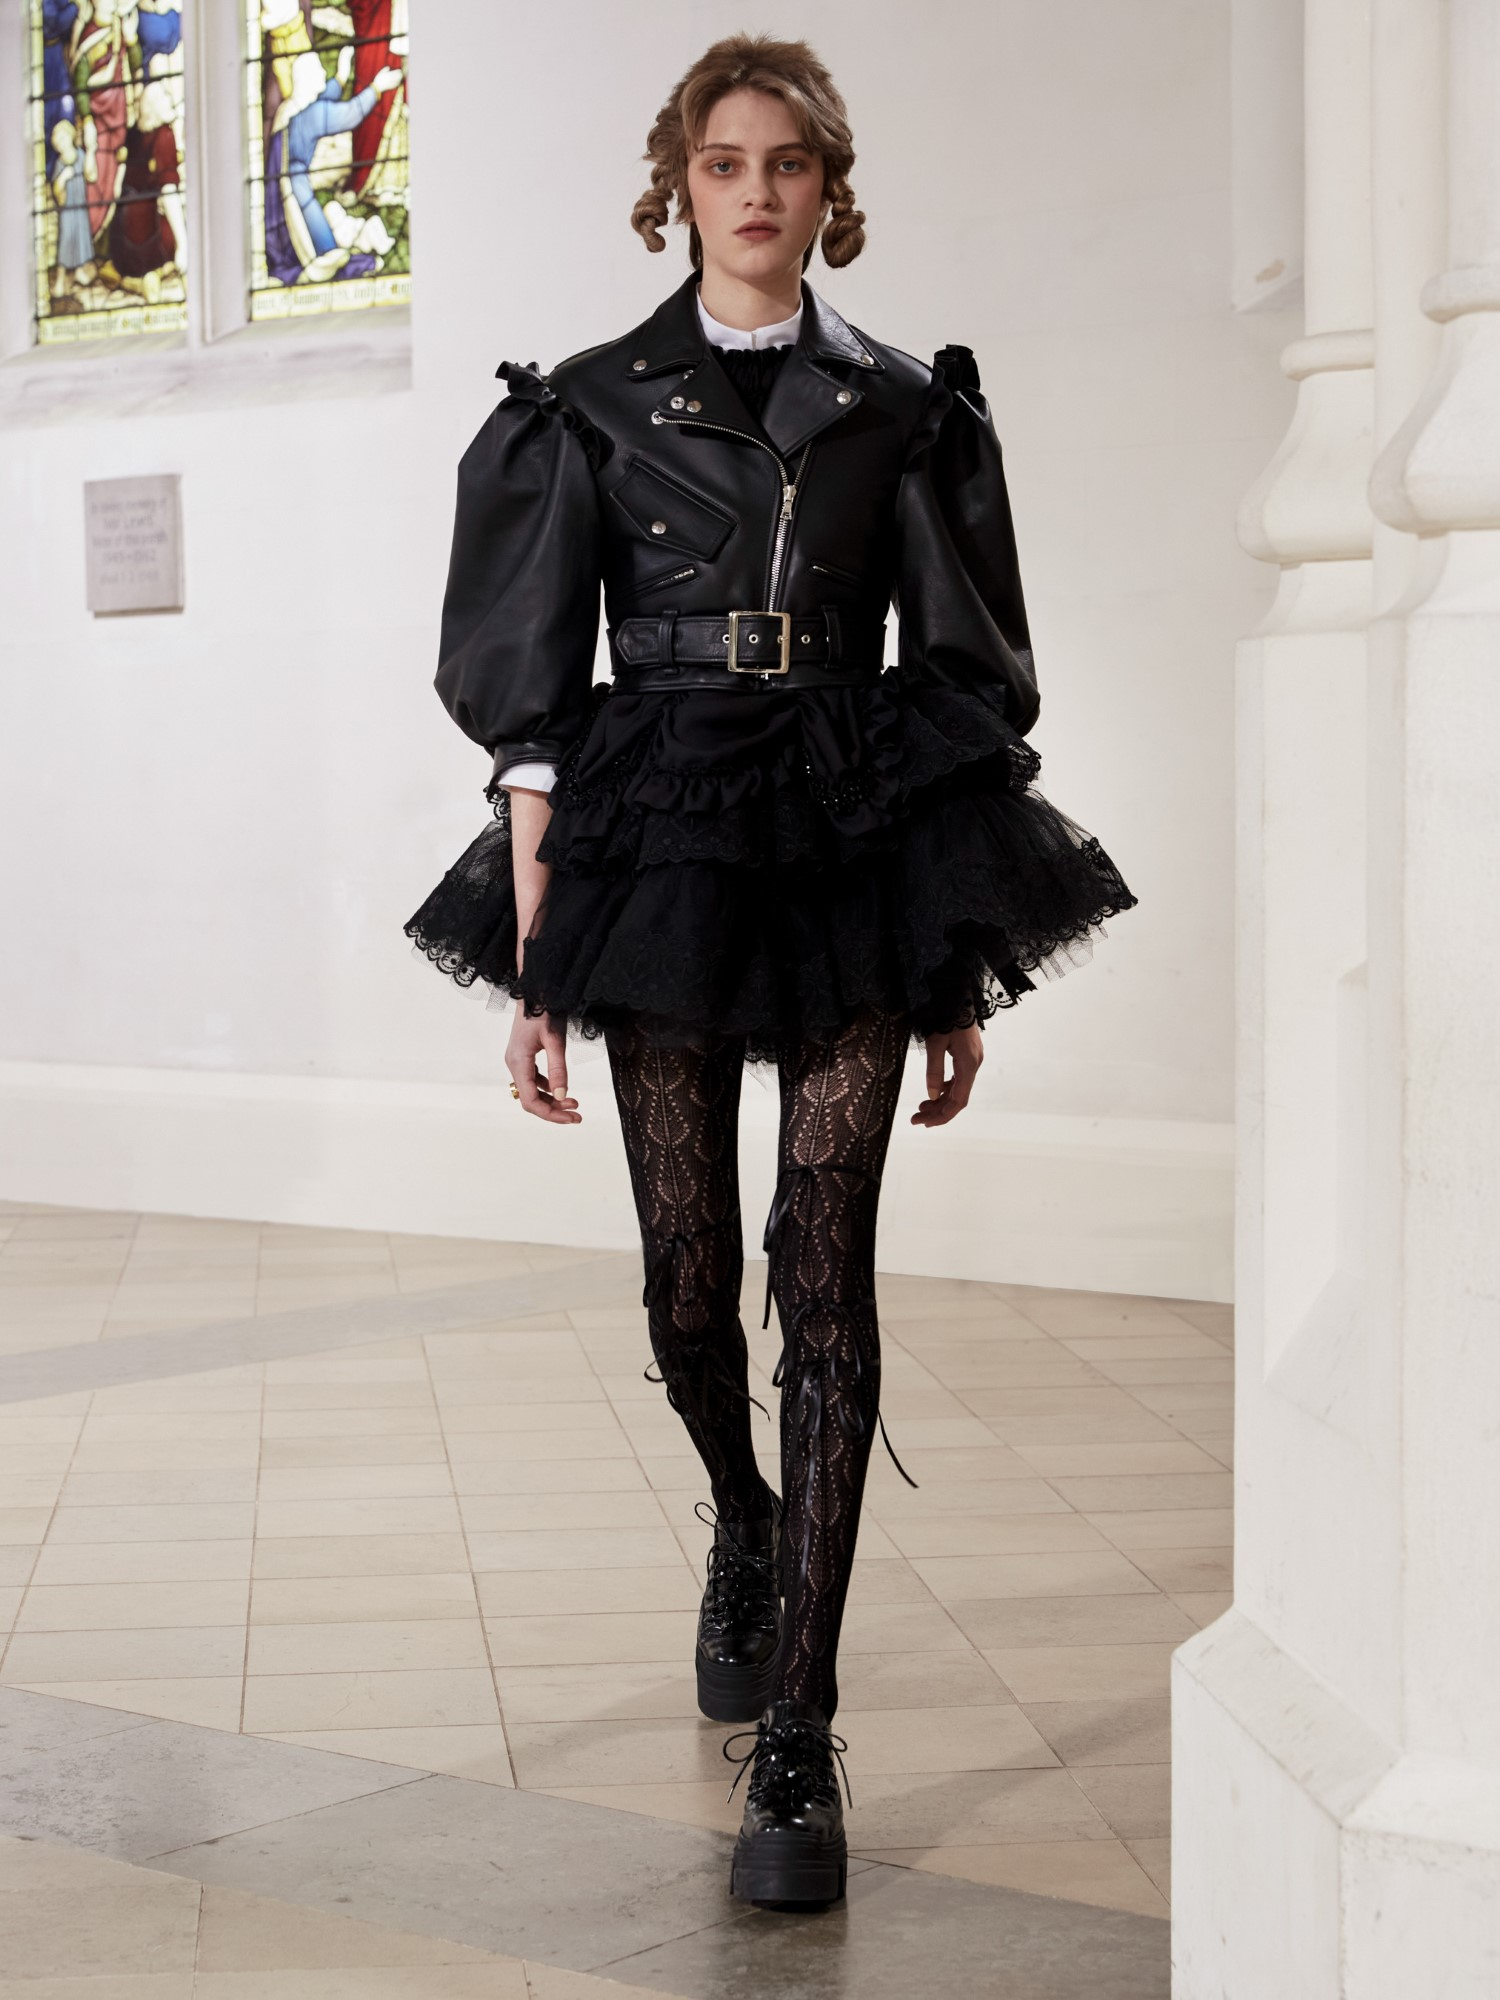 Simone Rocha Fall Winter 2021 - London Fashion Week